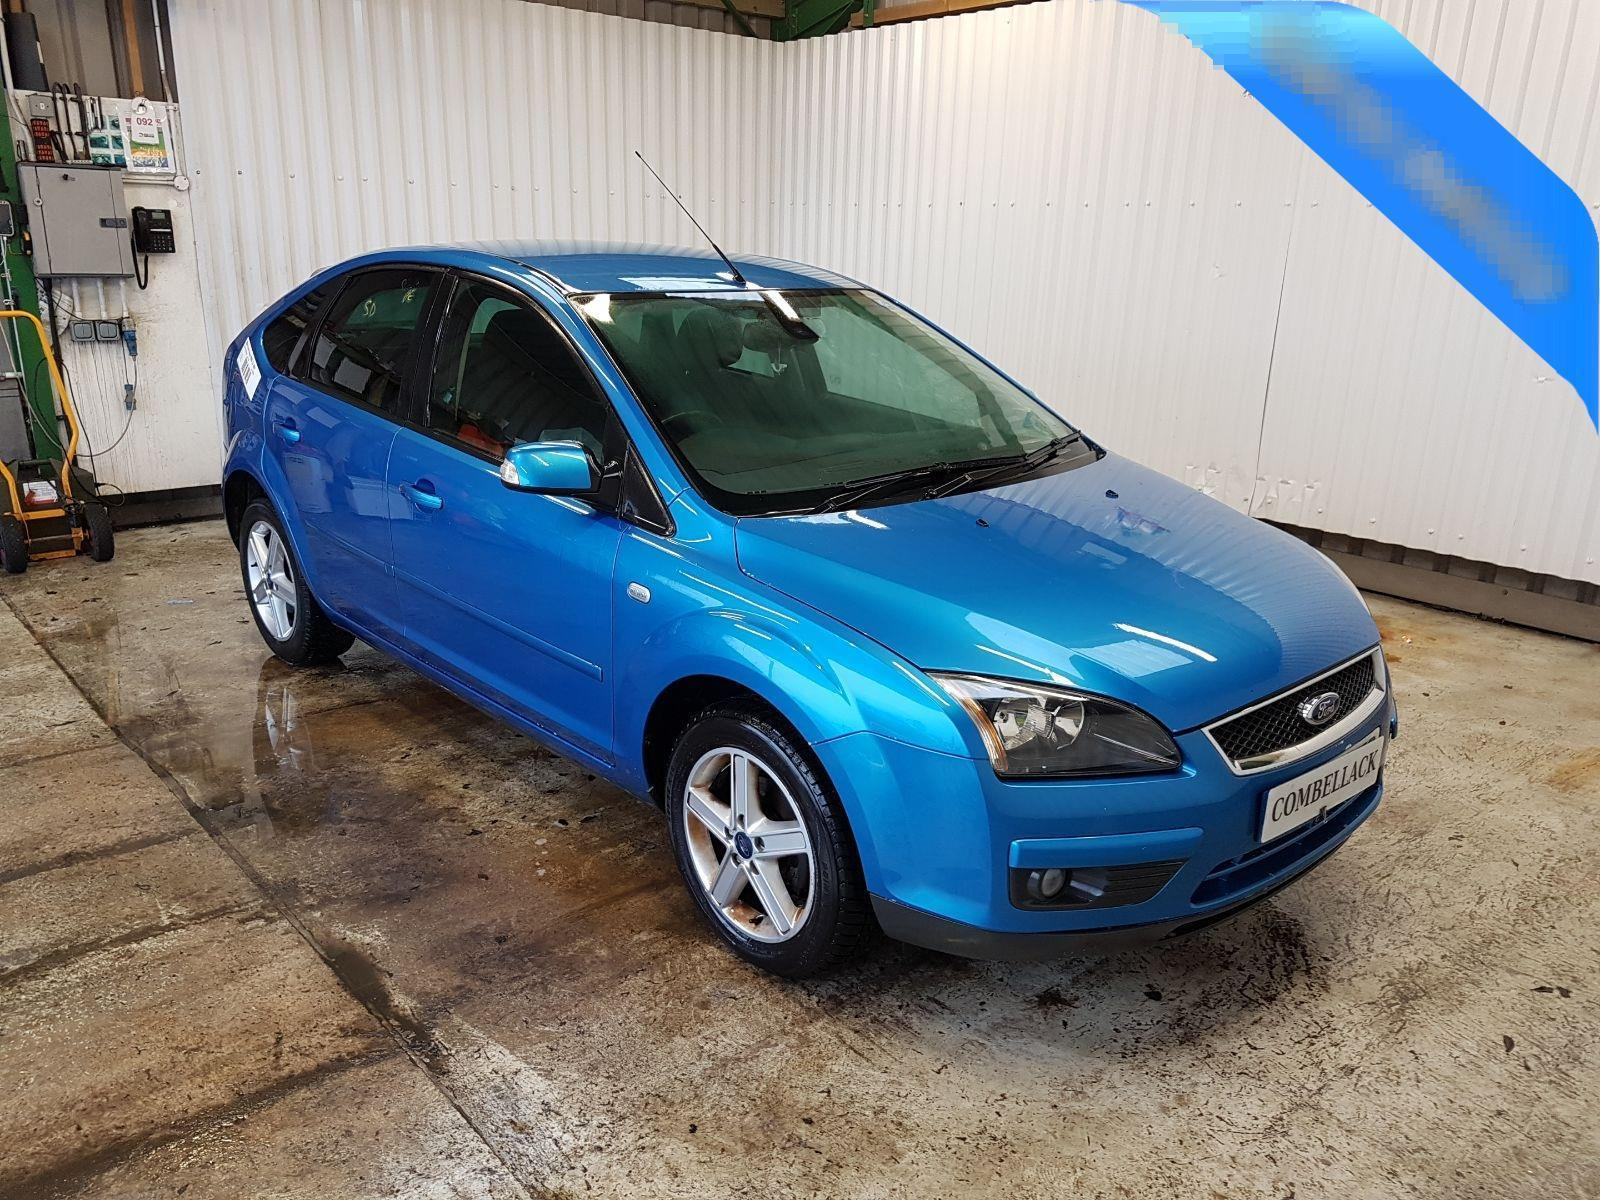 Ford Focus 2005 To 2007 Titanium 5 Door Hatchback